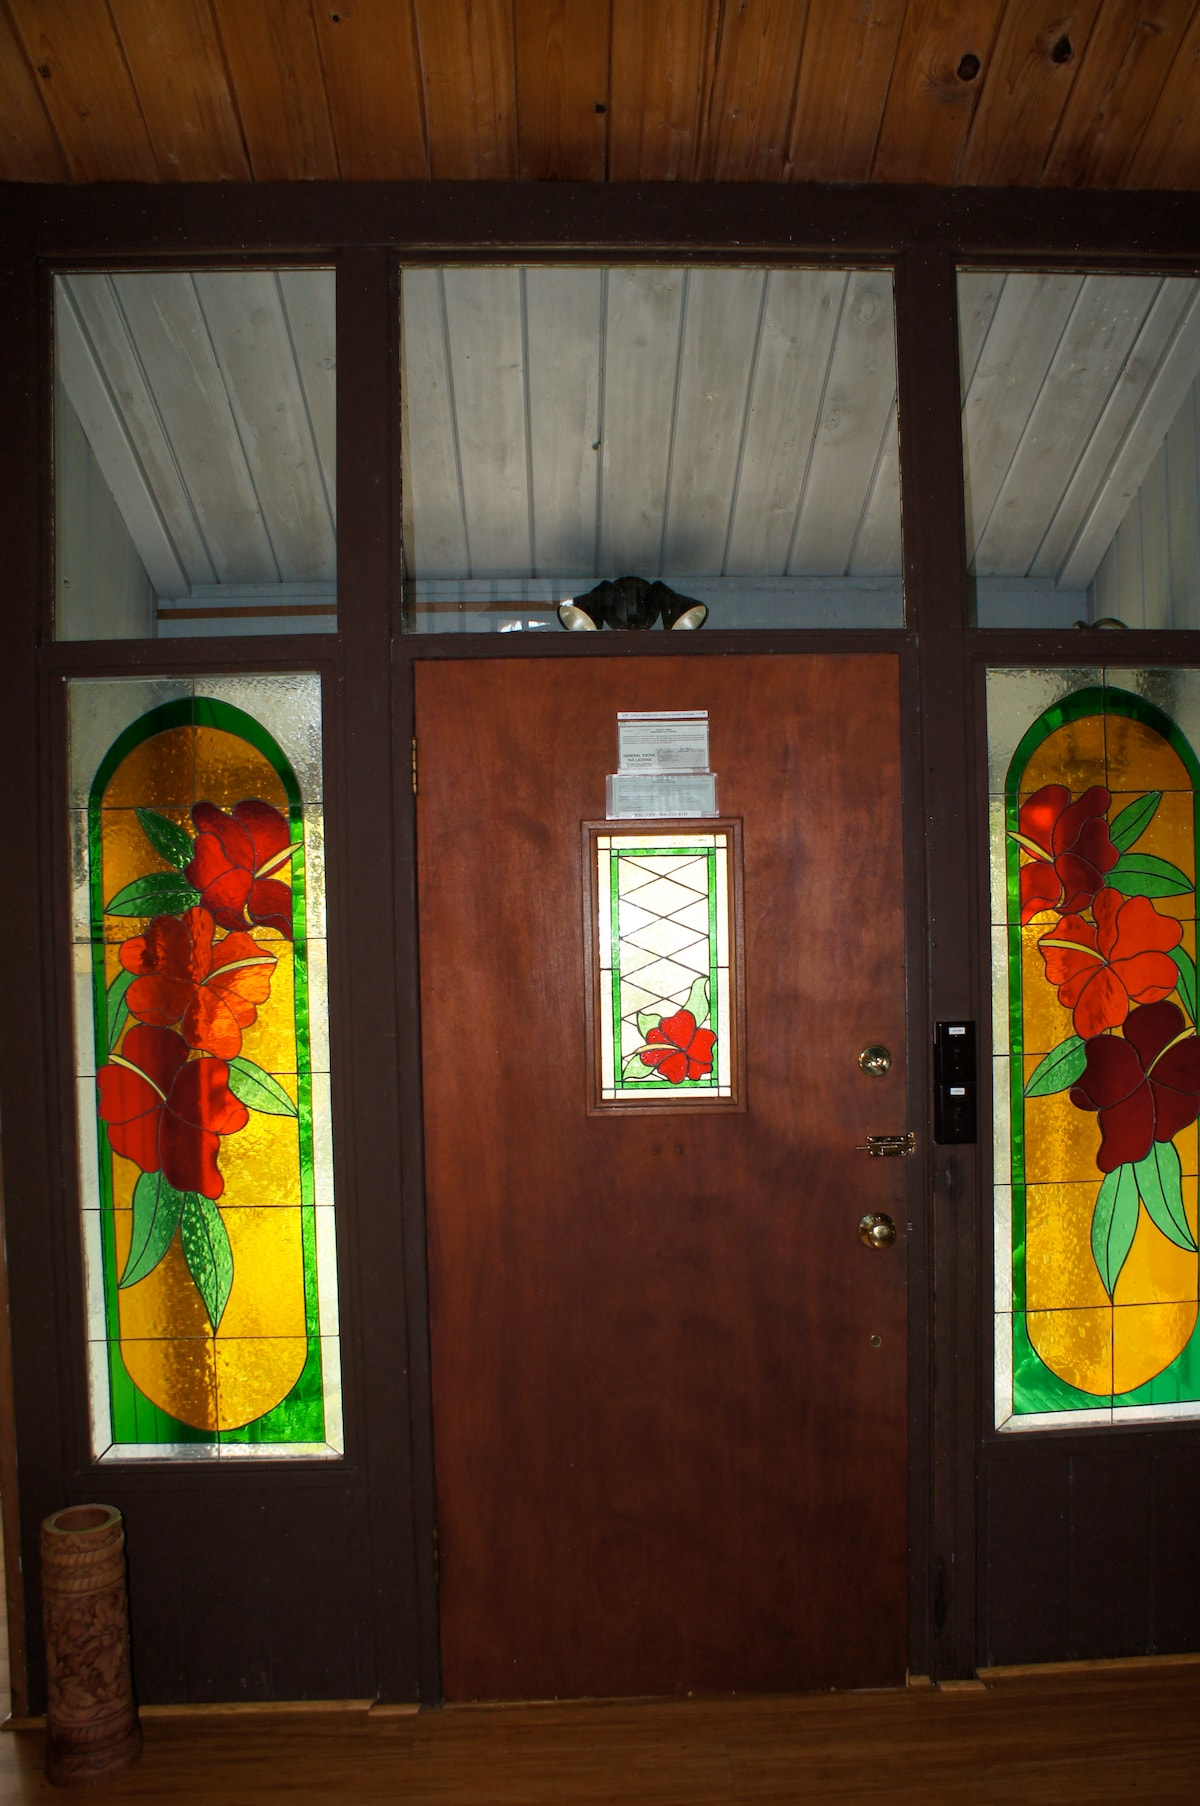 Entry door, viewed from the inside.  There is a motion detector security light for the front porch.